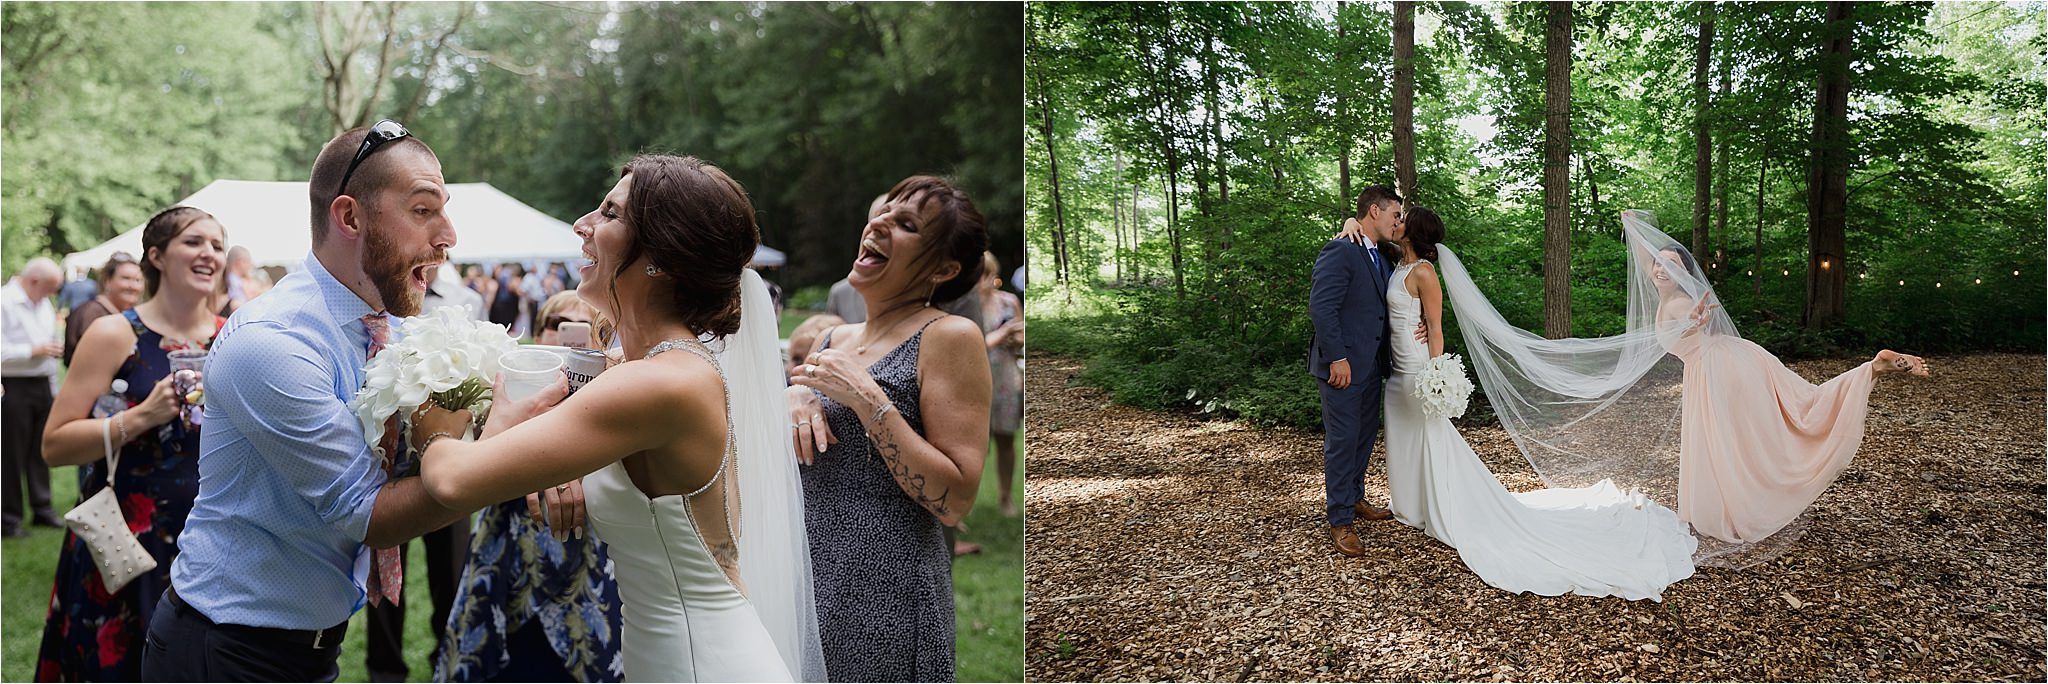 Sonia V Photography, The Clearing ceremony wedding venue, fun moments with the guests